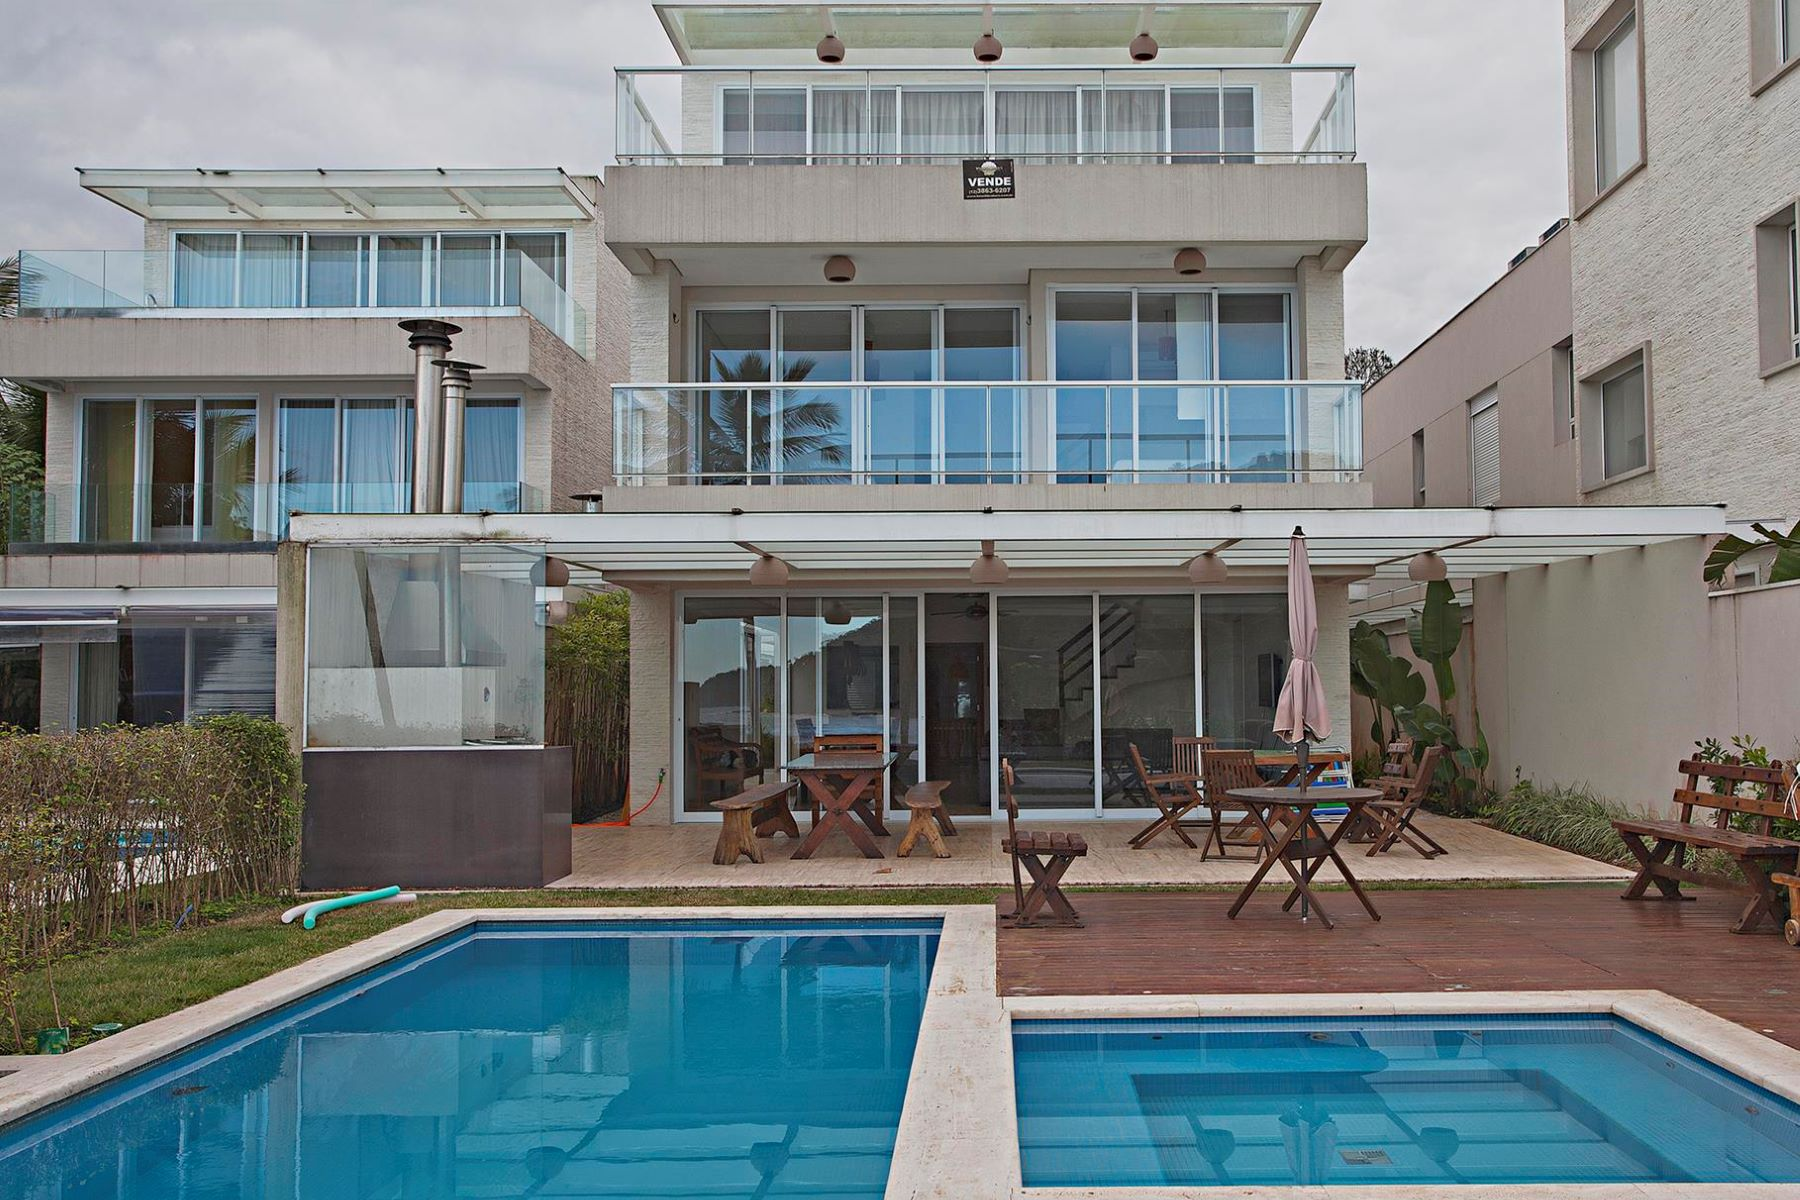 Single Family Home for Sale at Beach front House Avenida Deble Luiza Derani Sao Sebastiao, Sao Paulo, 11600-000 Brazil